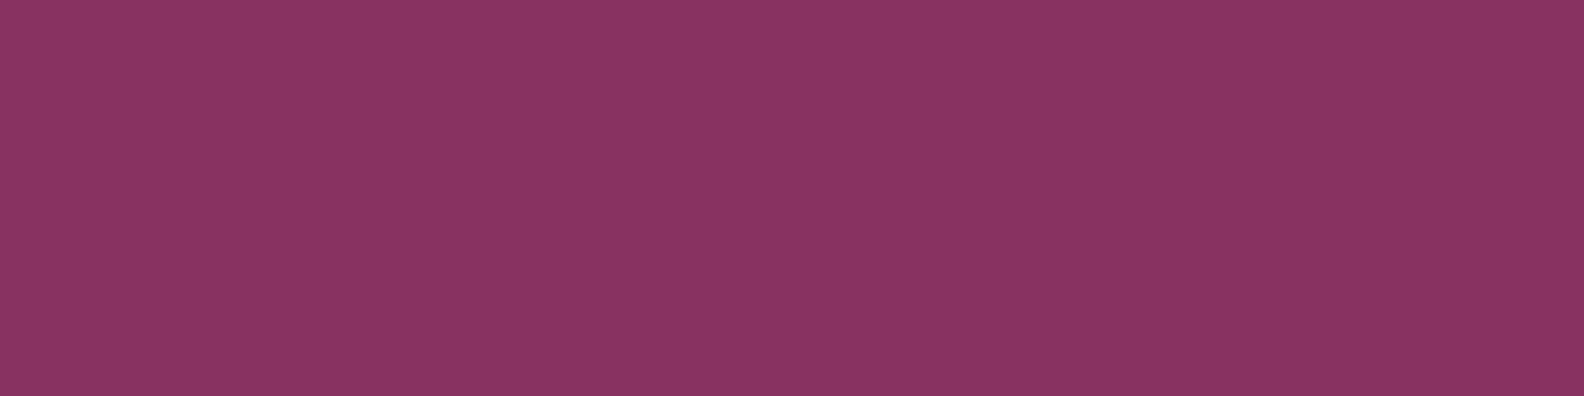 1584x396 Boysenberry Solid Color Background